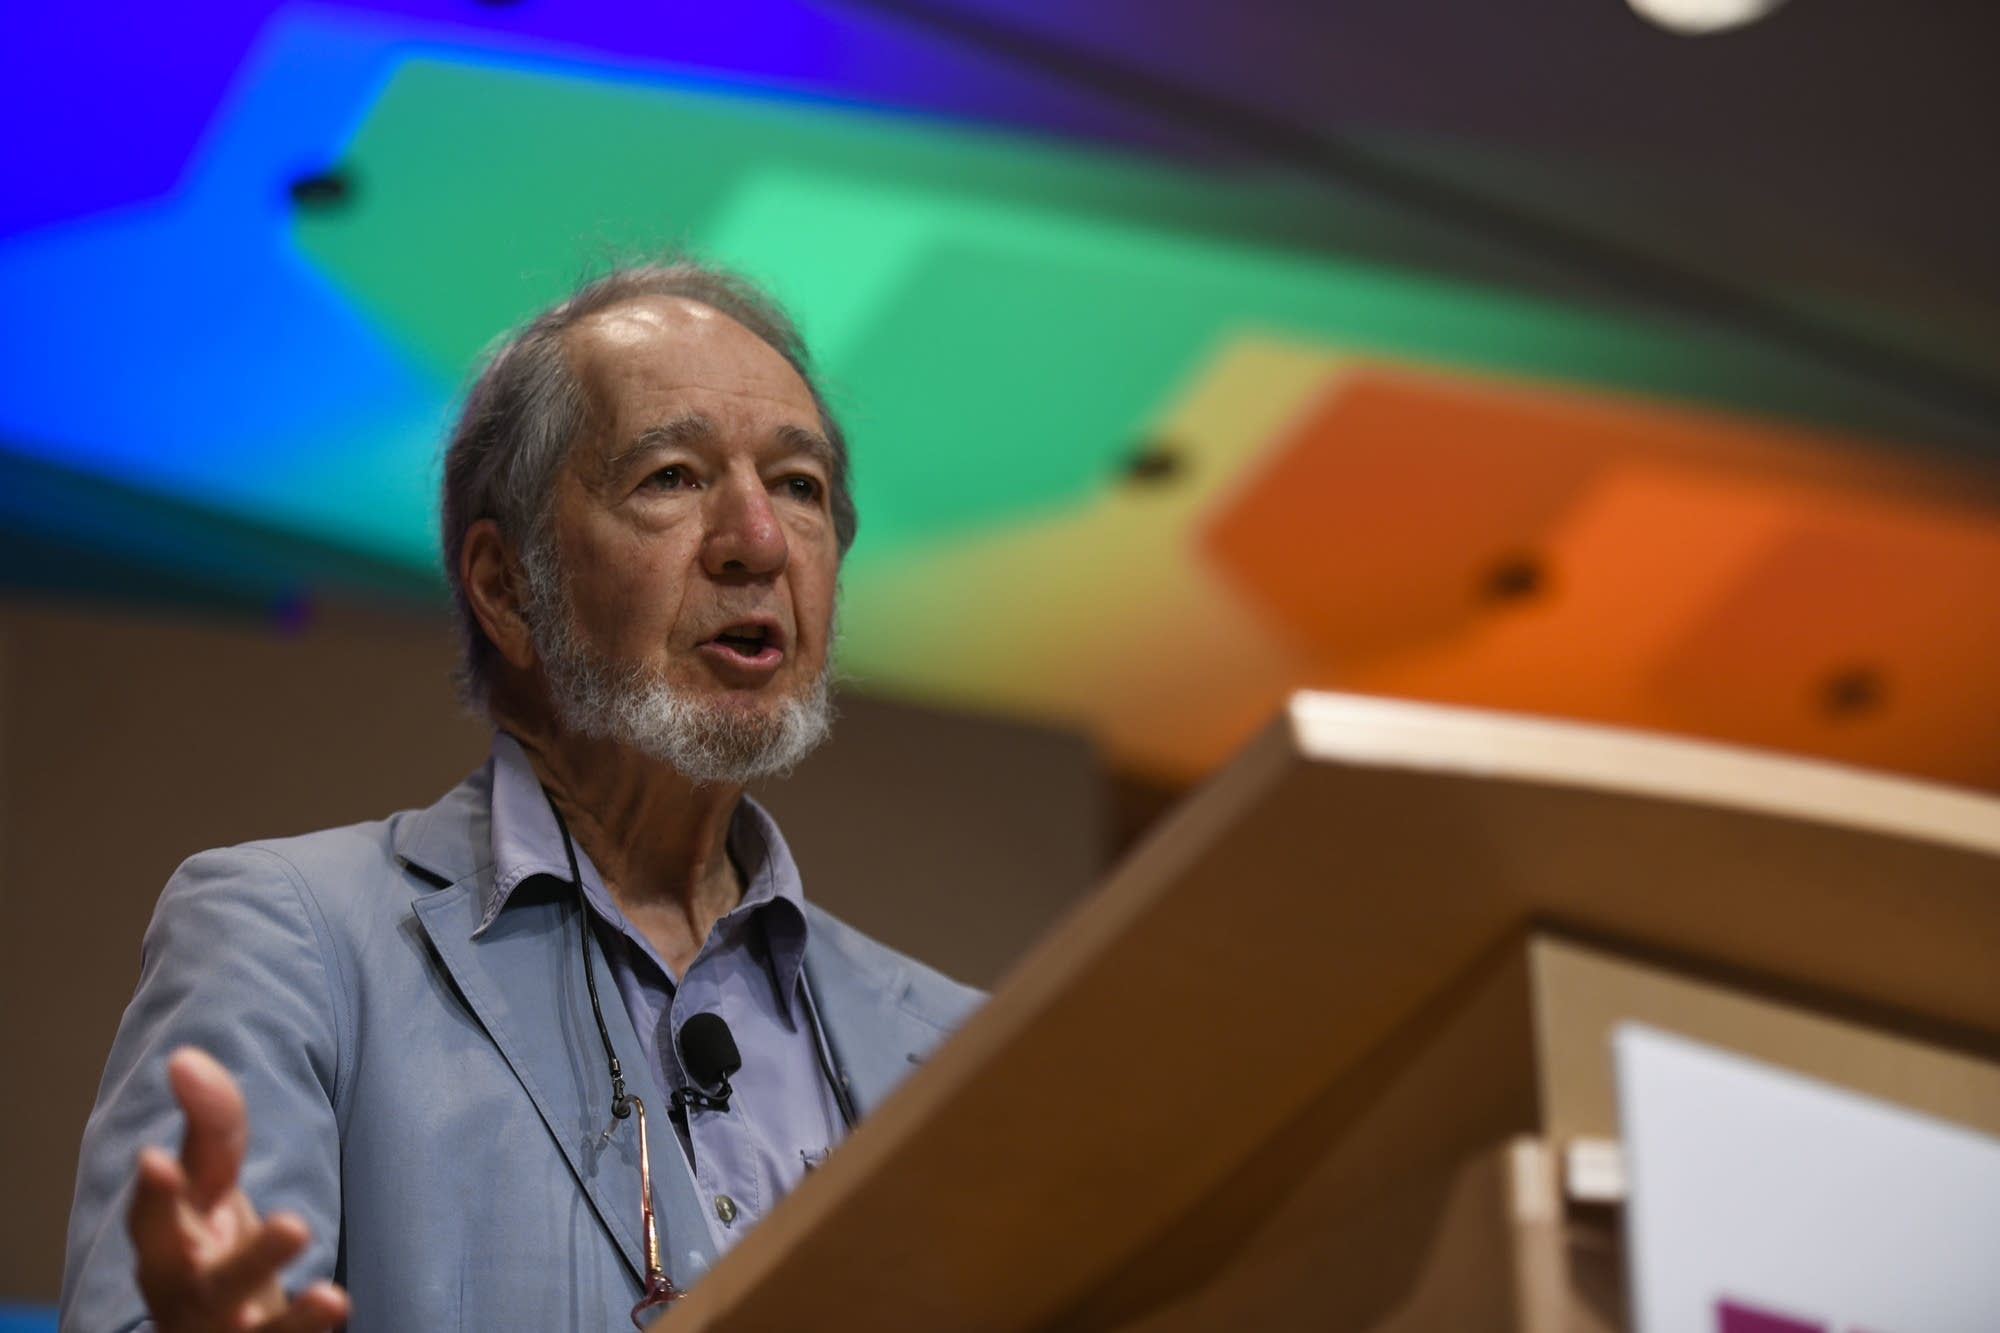 Jared Diamond talking about the national political crisis.